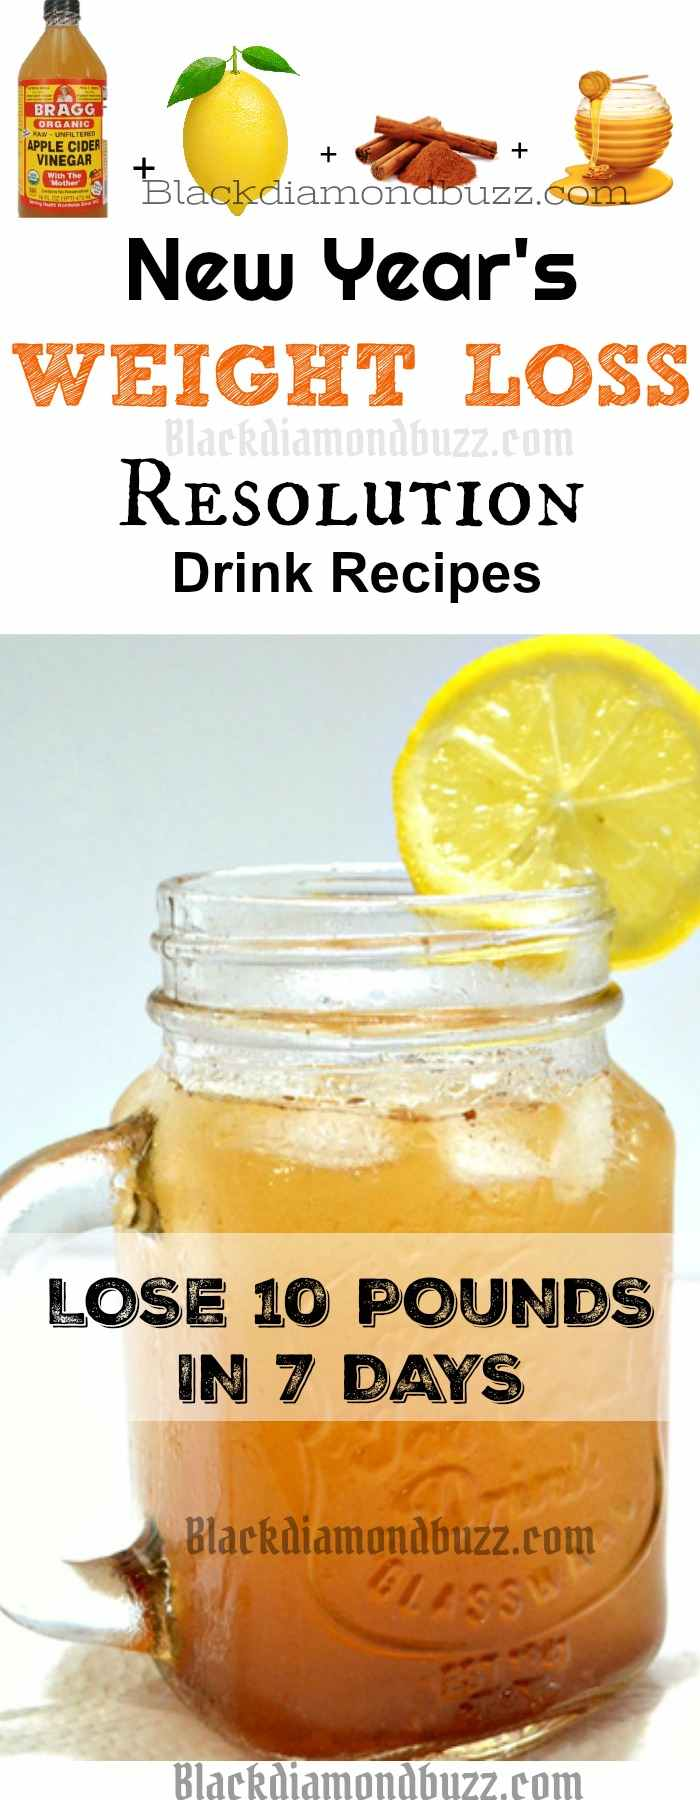 Detox drinks for belly fat all the best drinks in 2018 for Tea and liquor recipes